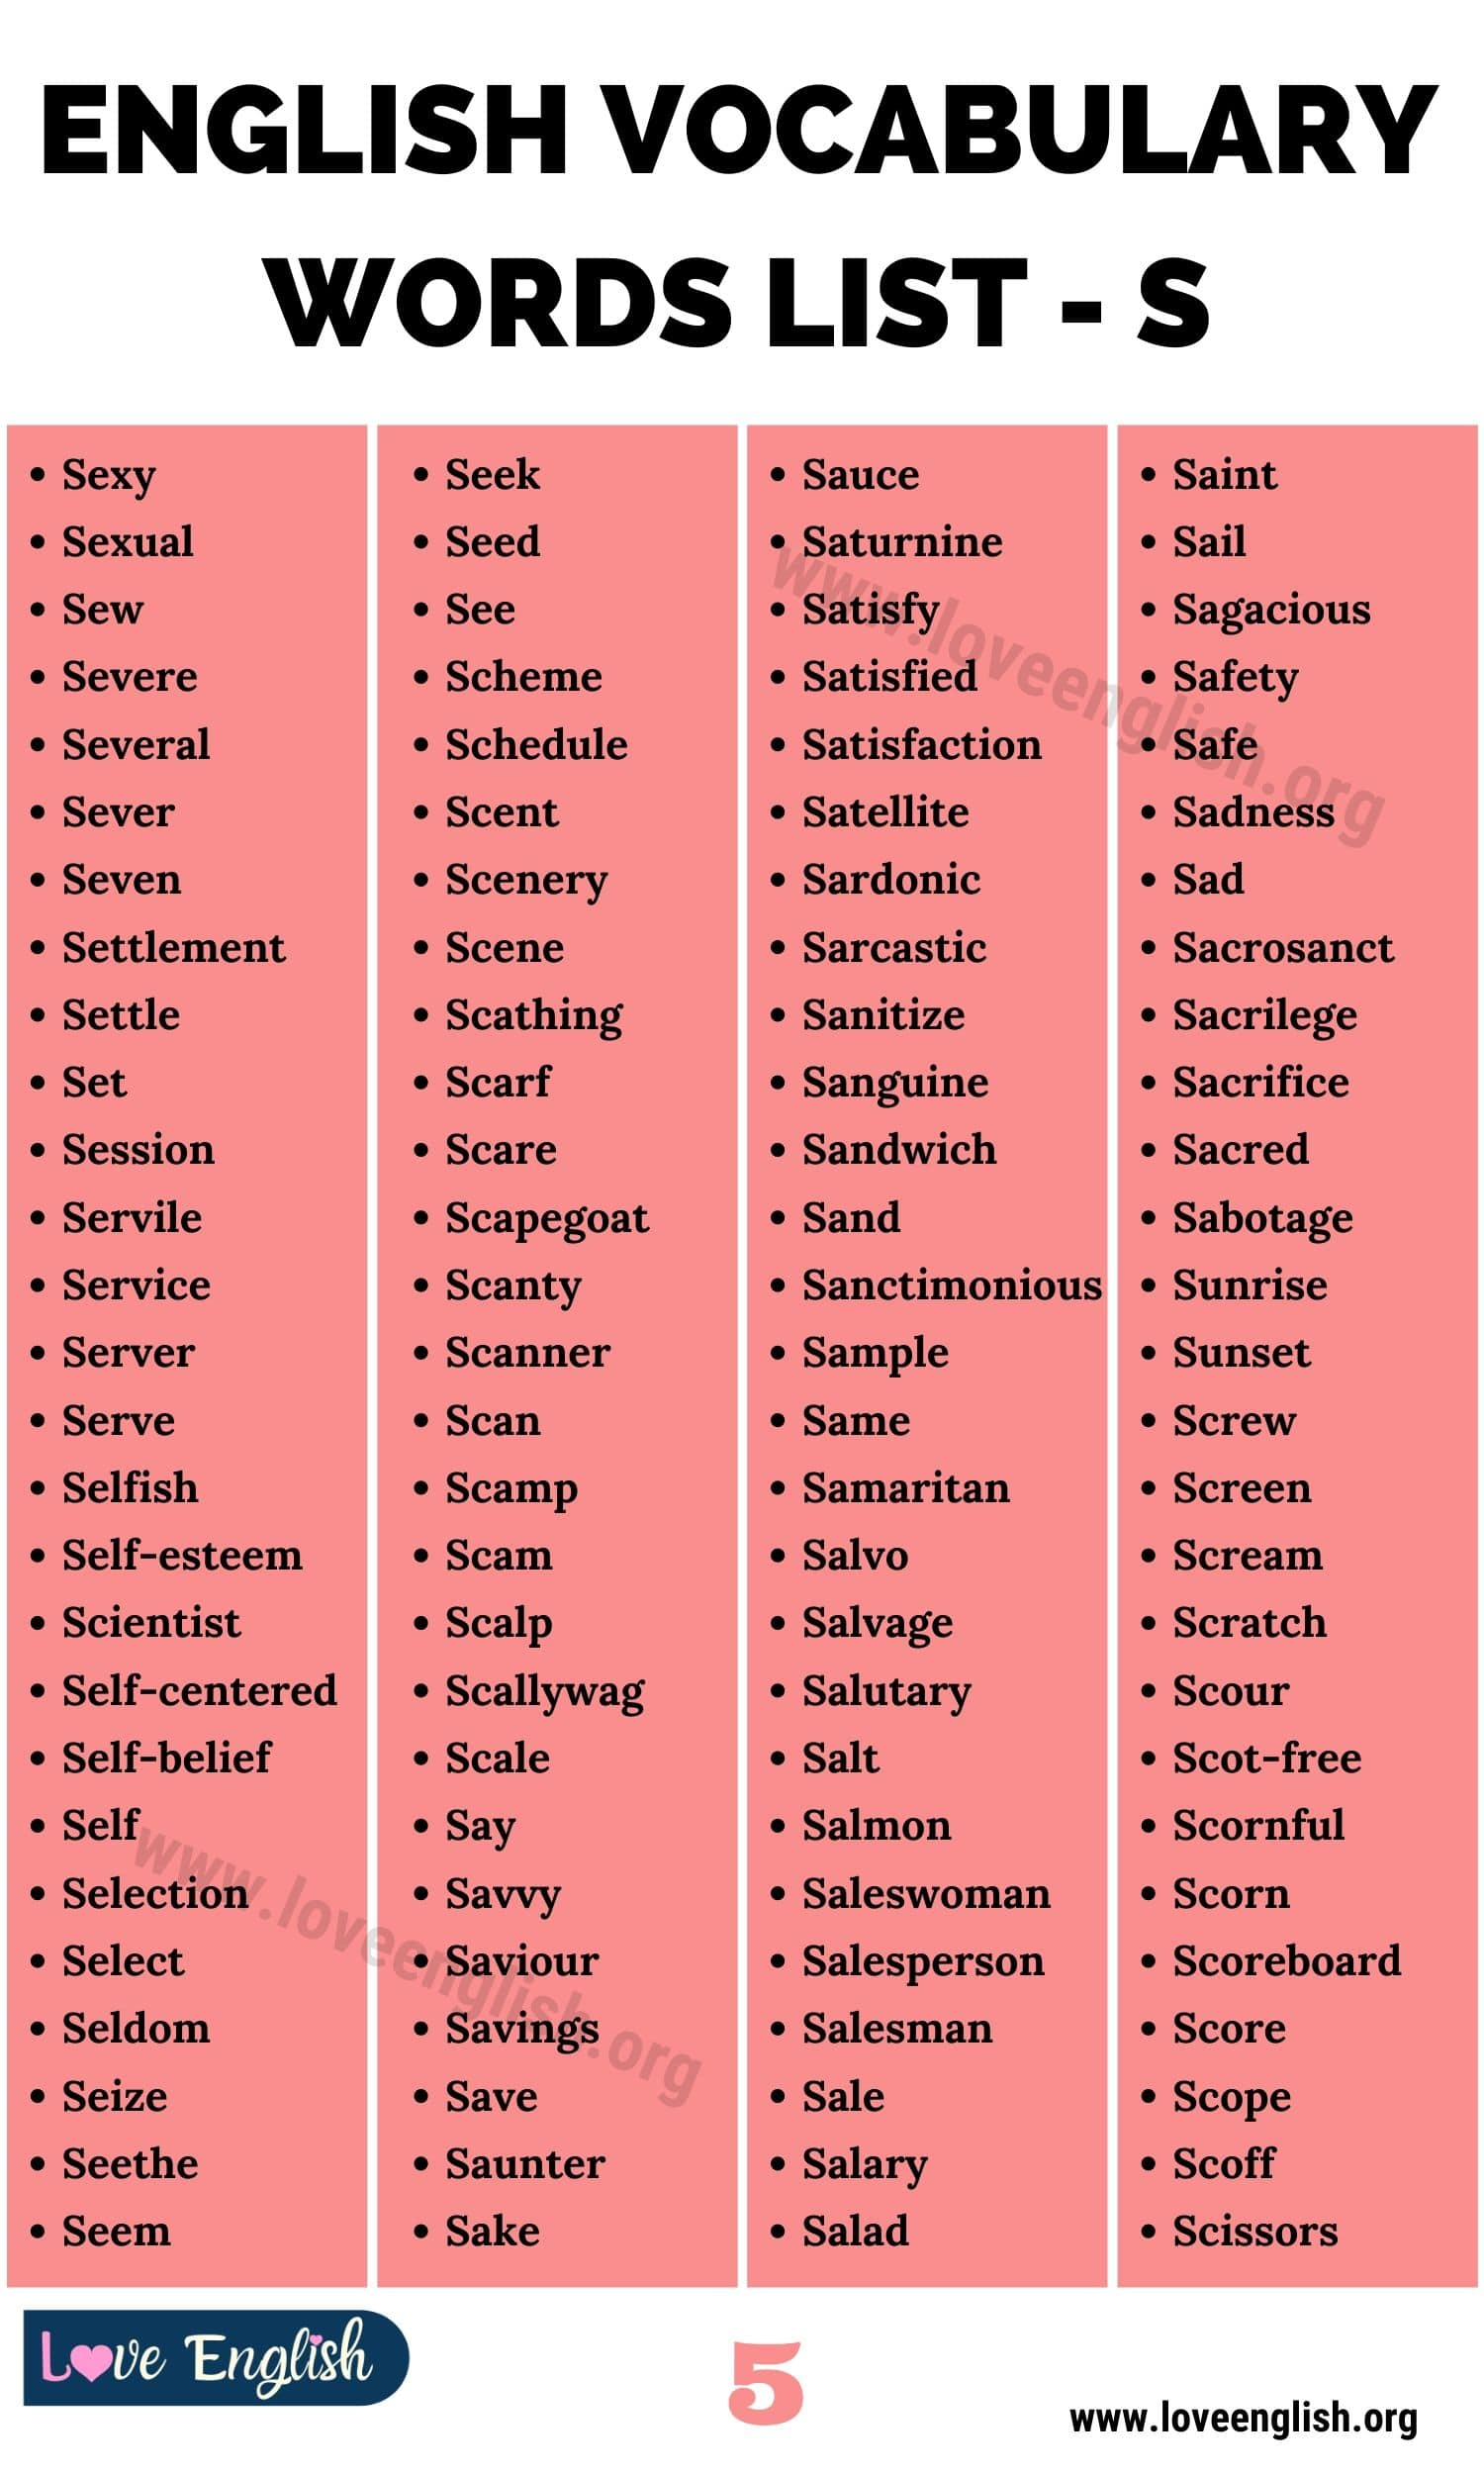 Words that Start with S